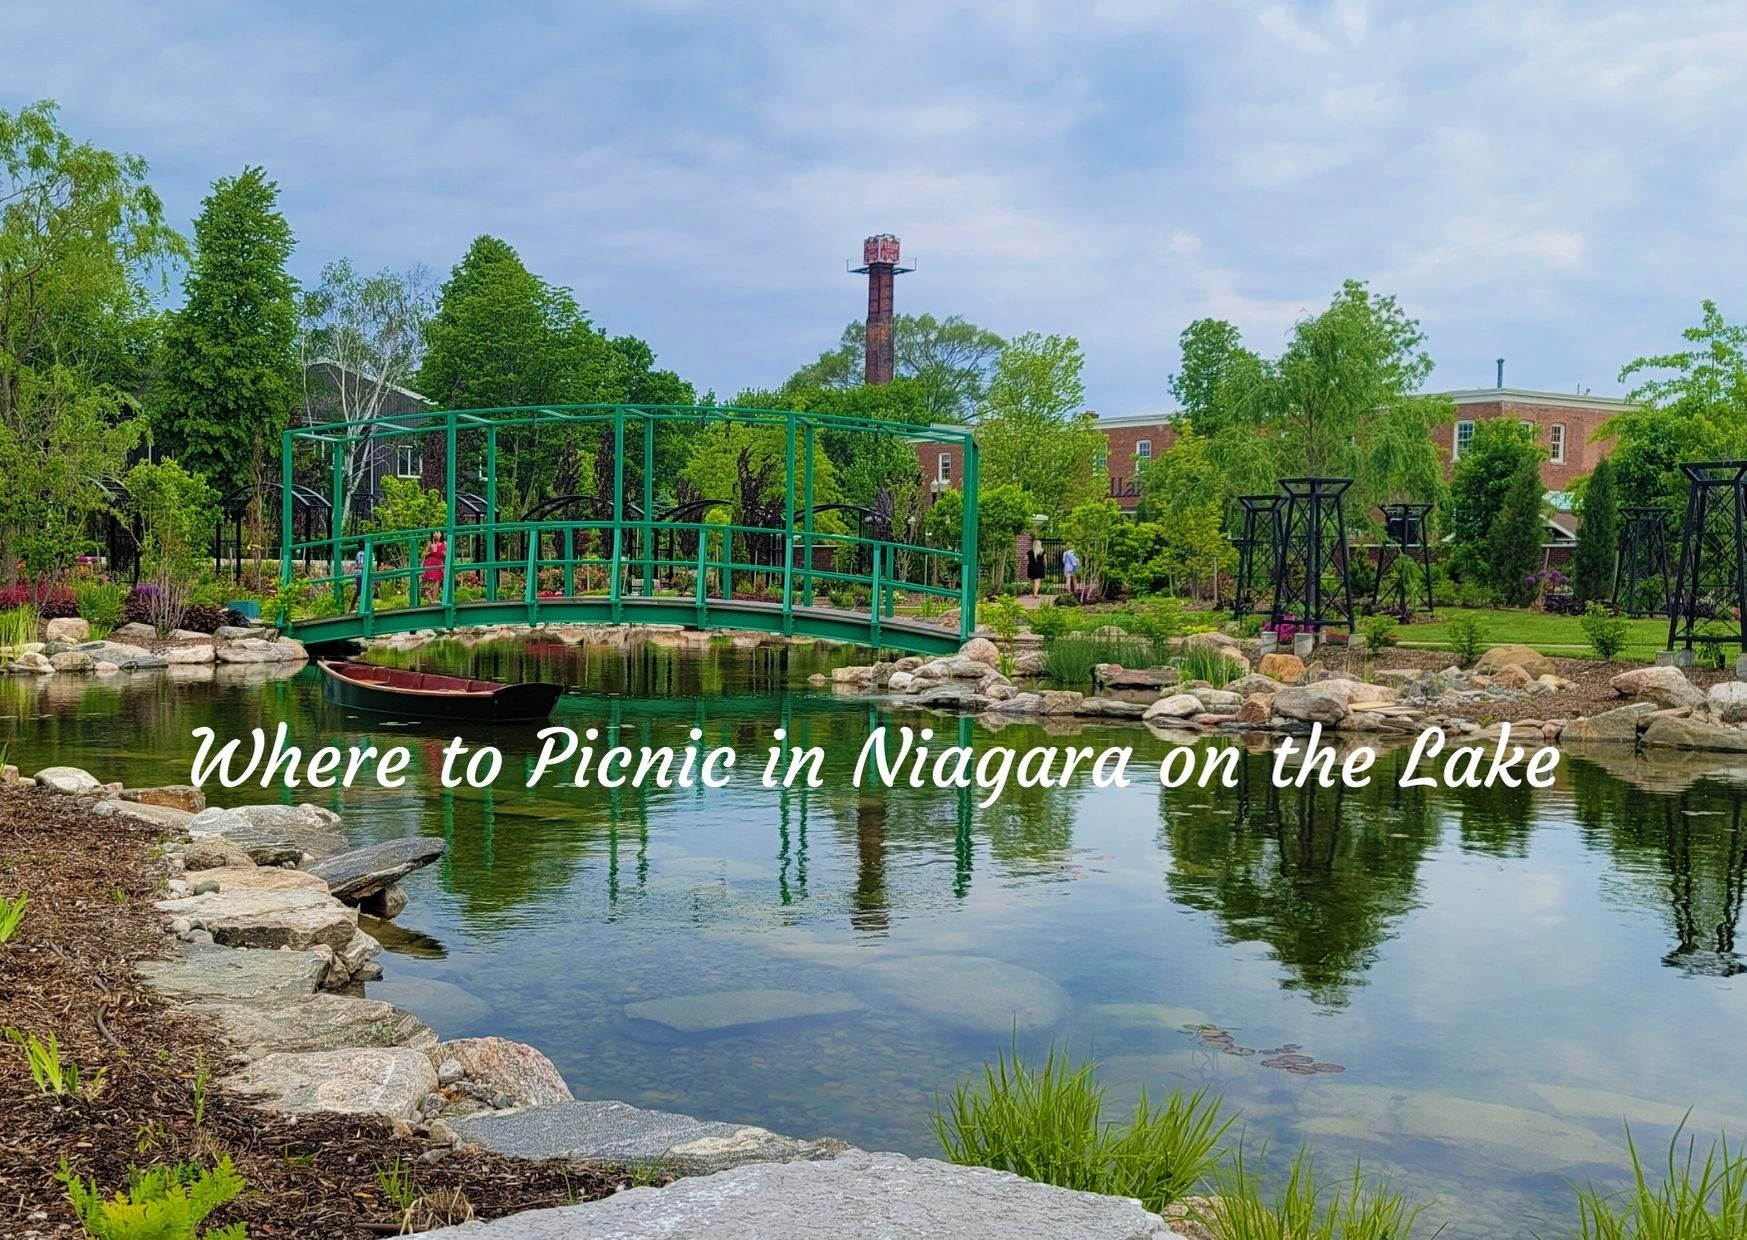 Garden and water with caption Where to picnic in Niagara on the Lake